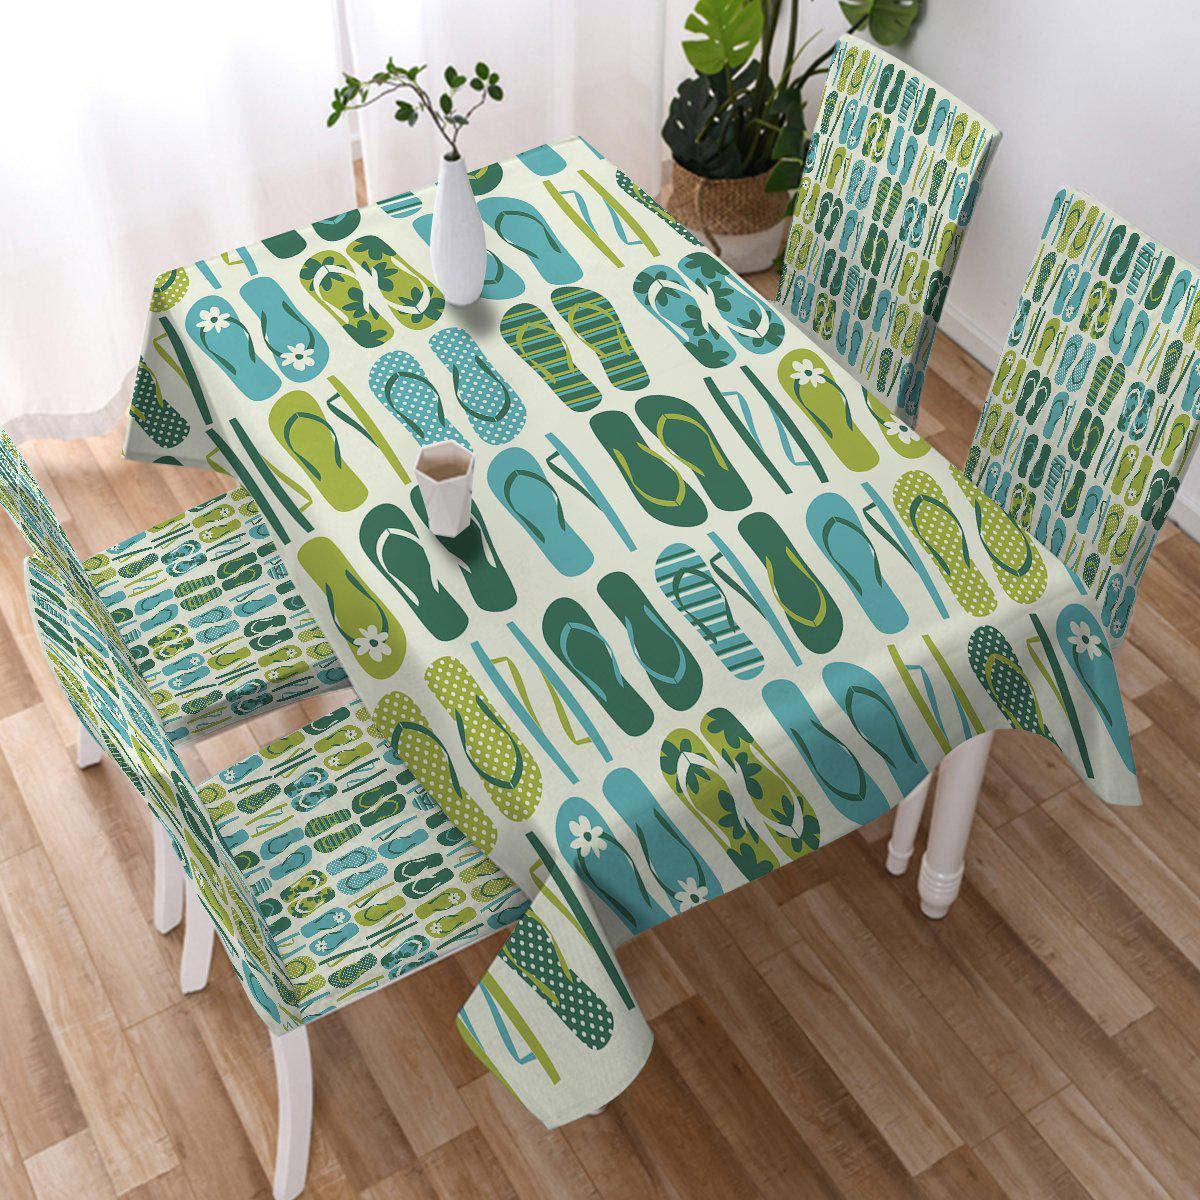 Flip Flop Frenzy Tablecloth-Coastal Passion